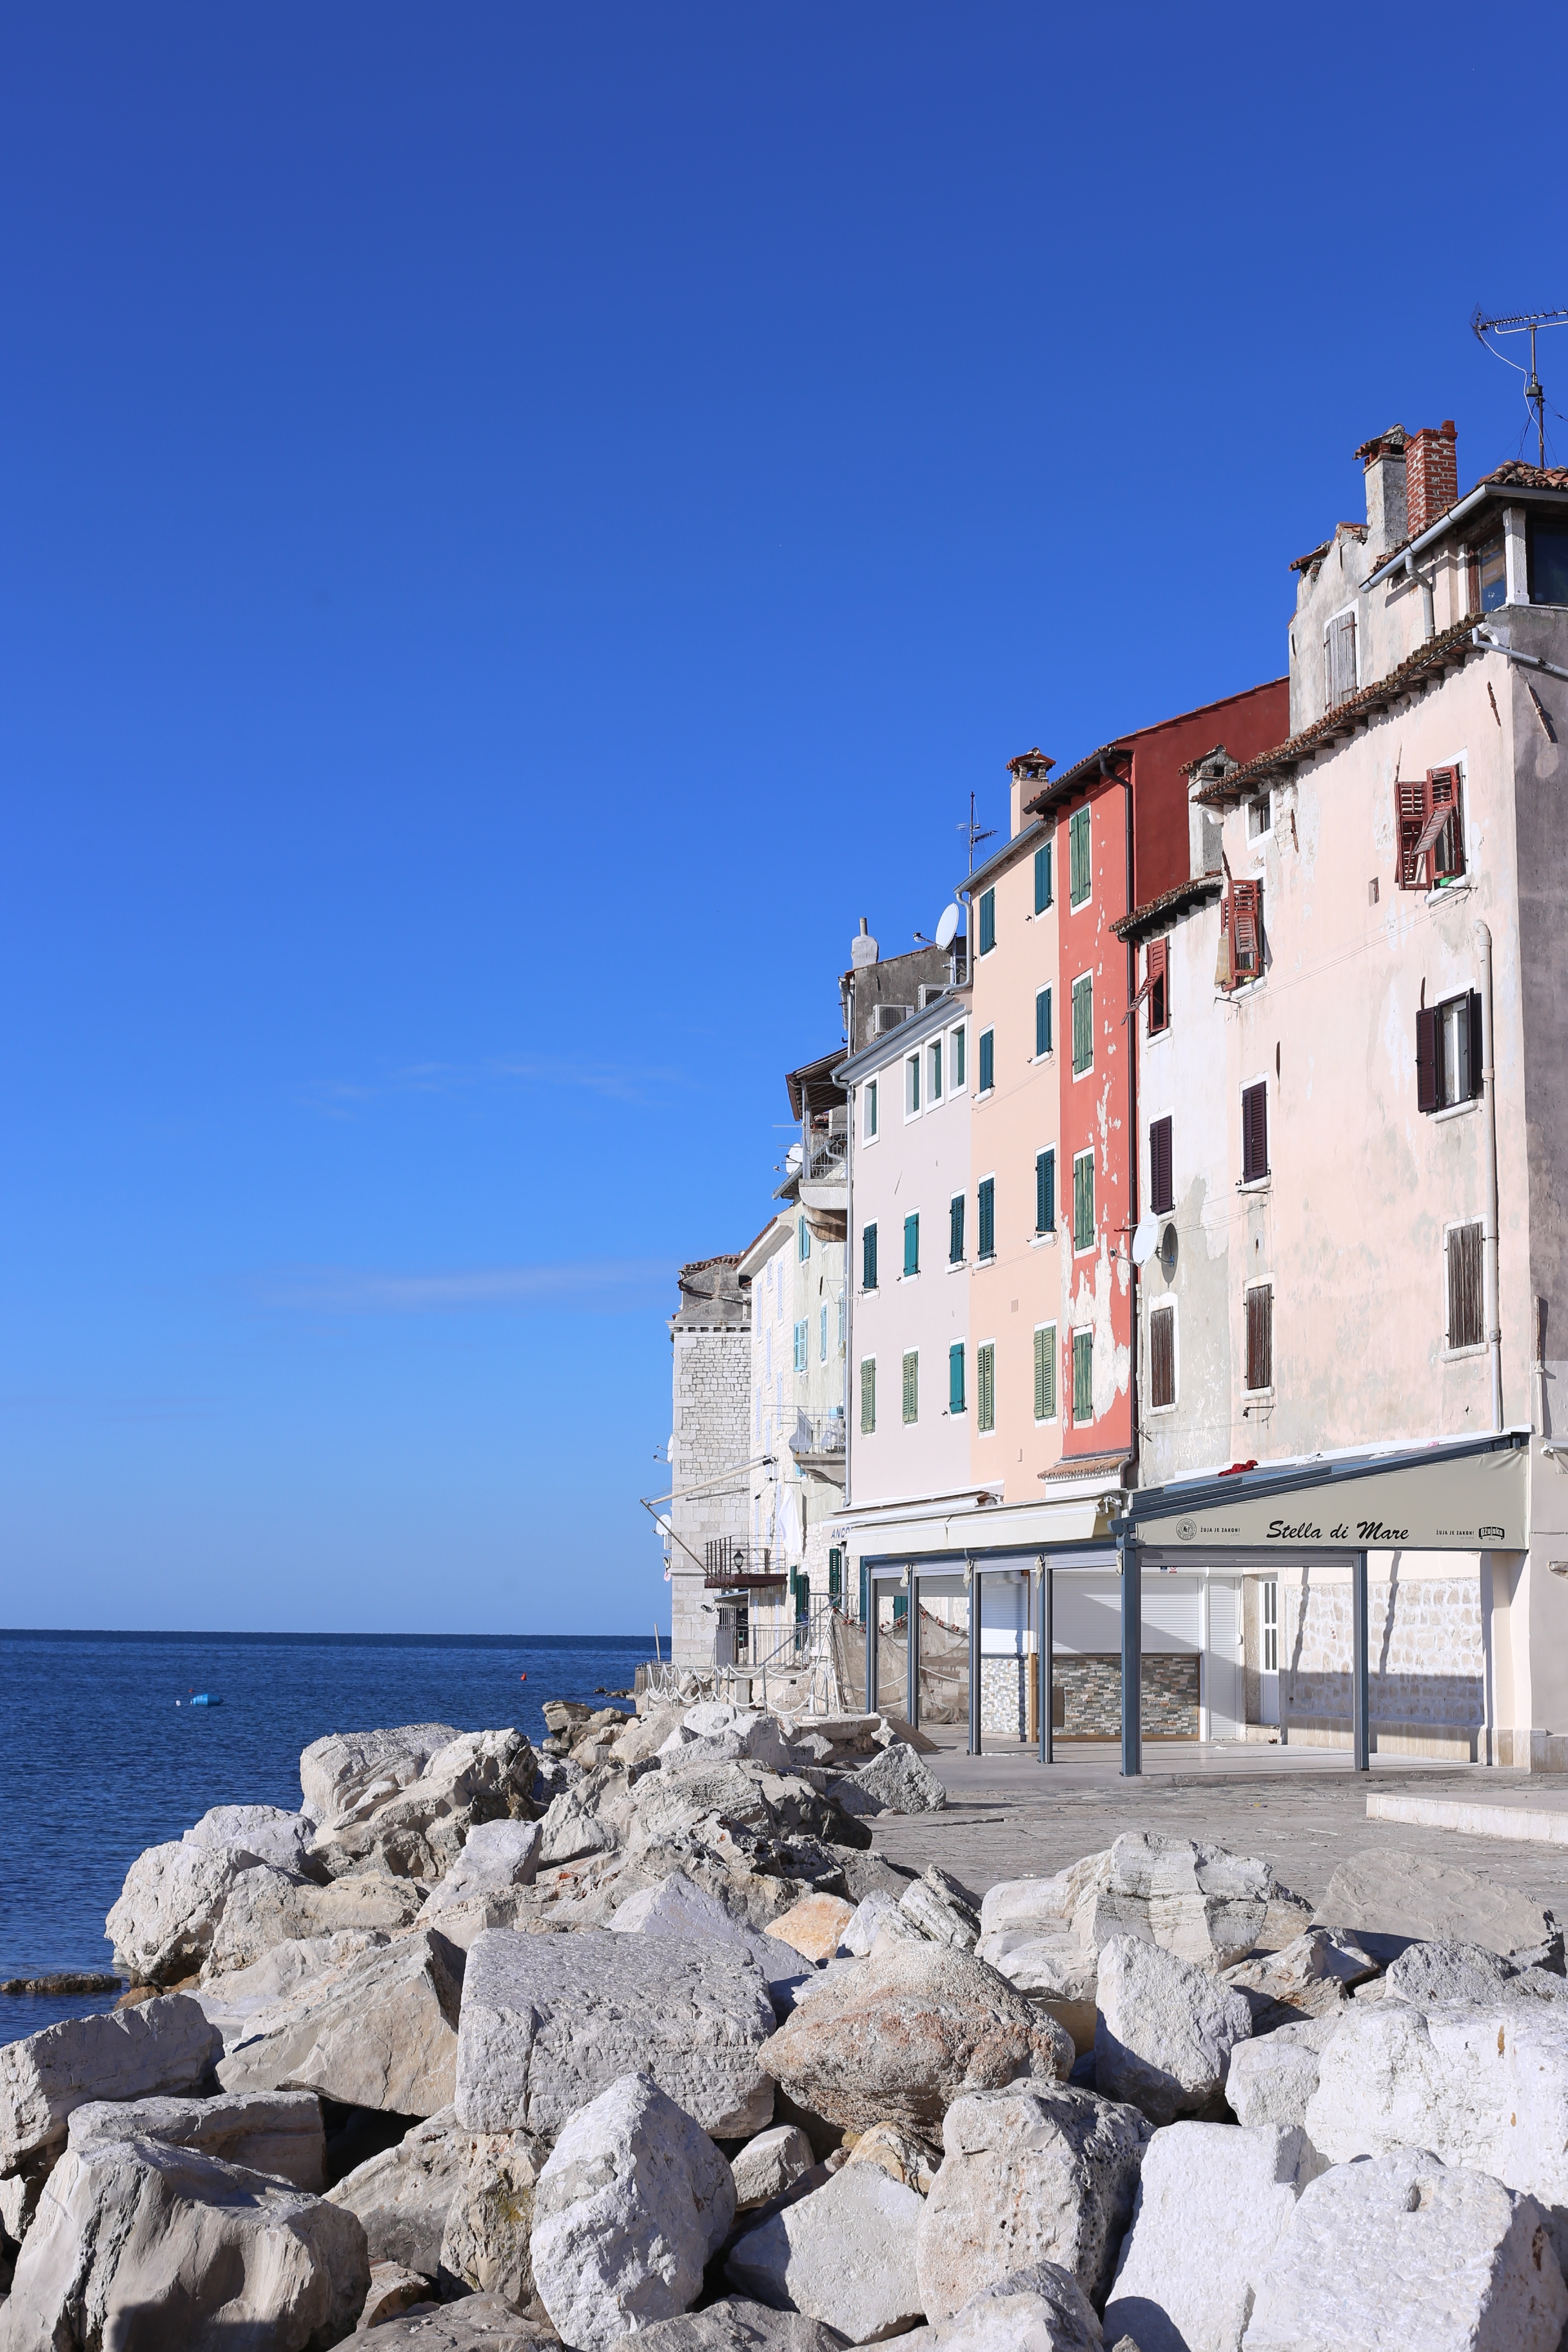 White washed houses by the Adriatic ocean.